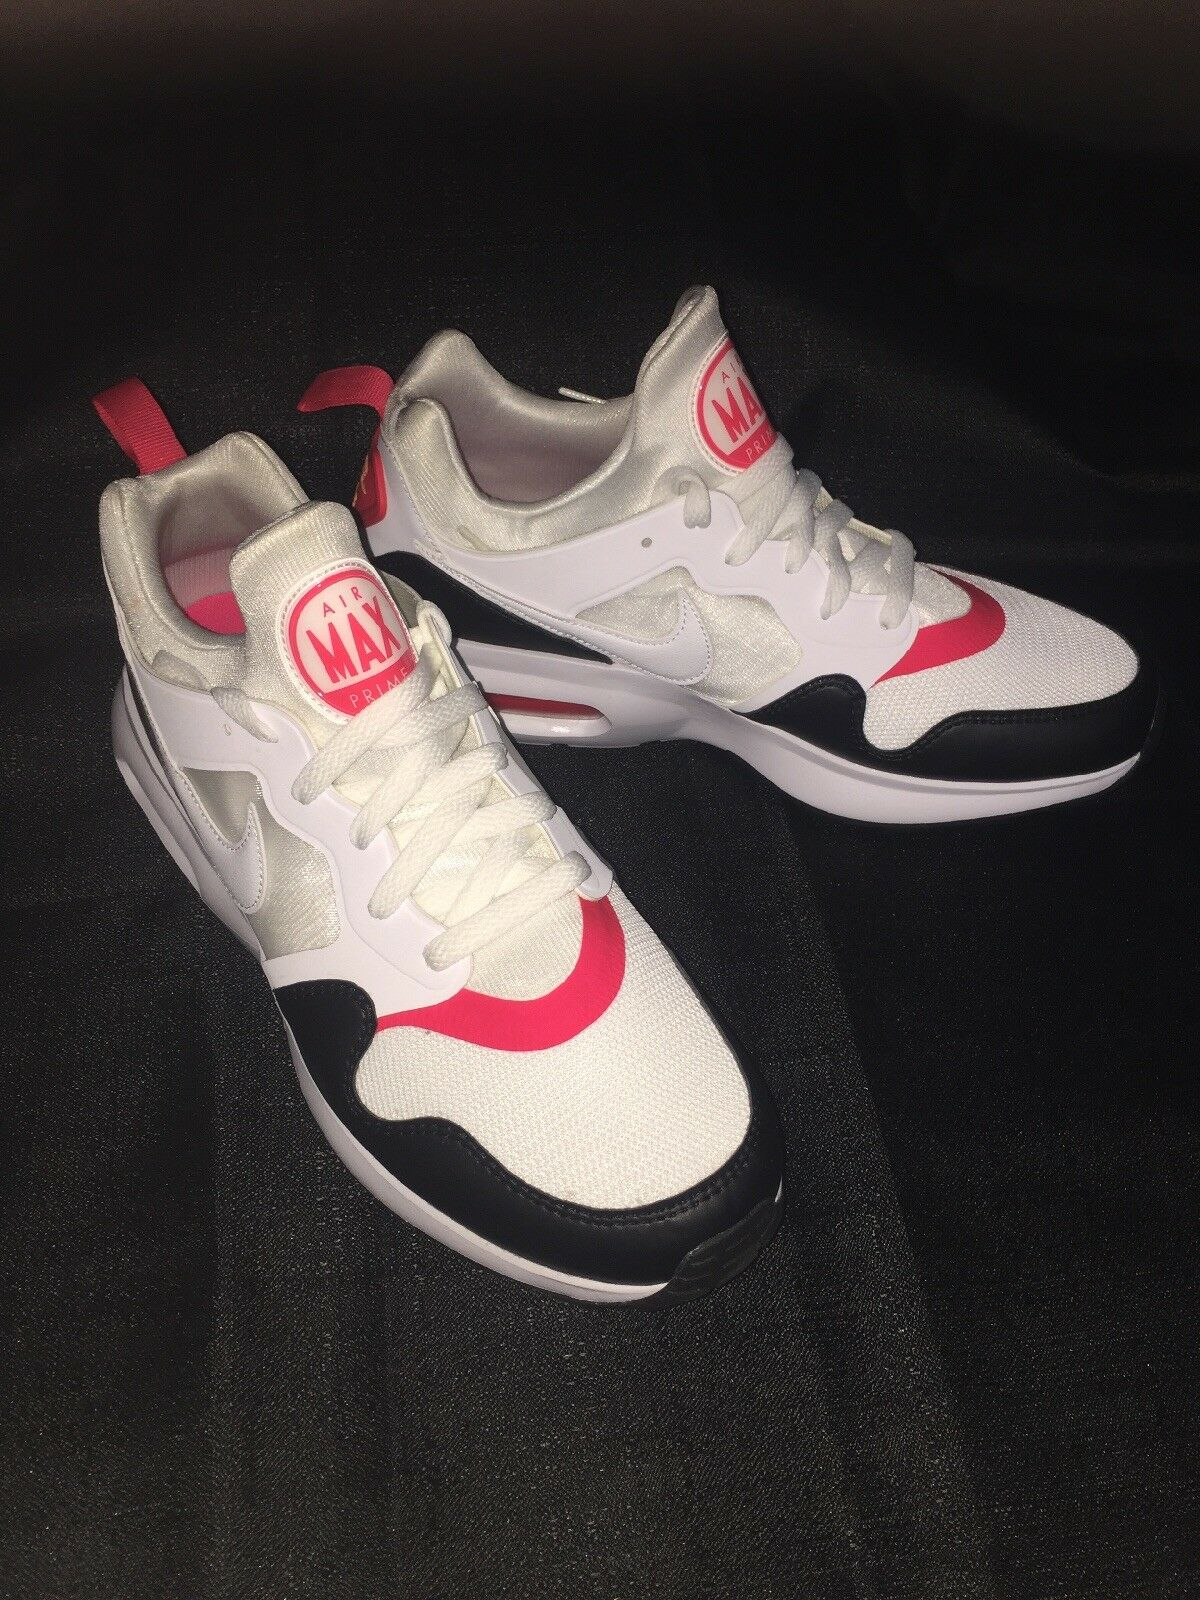 MEN'S NIKE AIR MAX PRIME WHITE/SIREN RED/BLACK SIZE 10